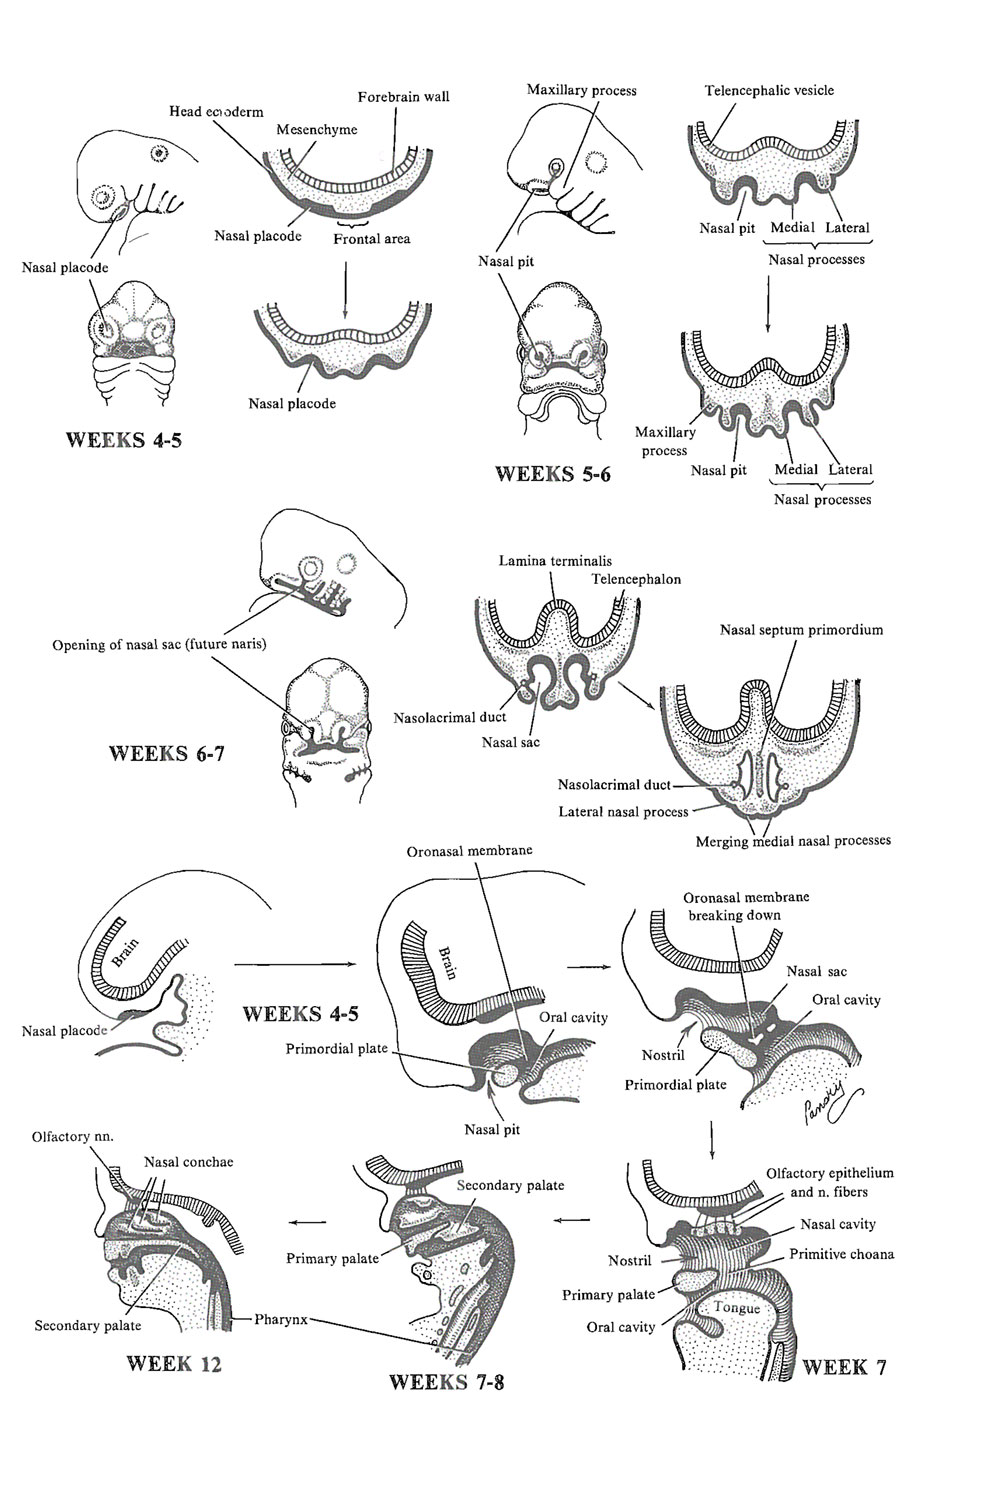 development of the nasal cavities: image #1